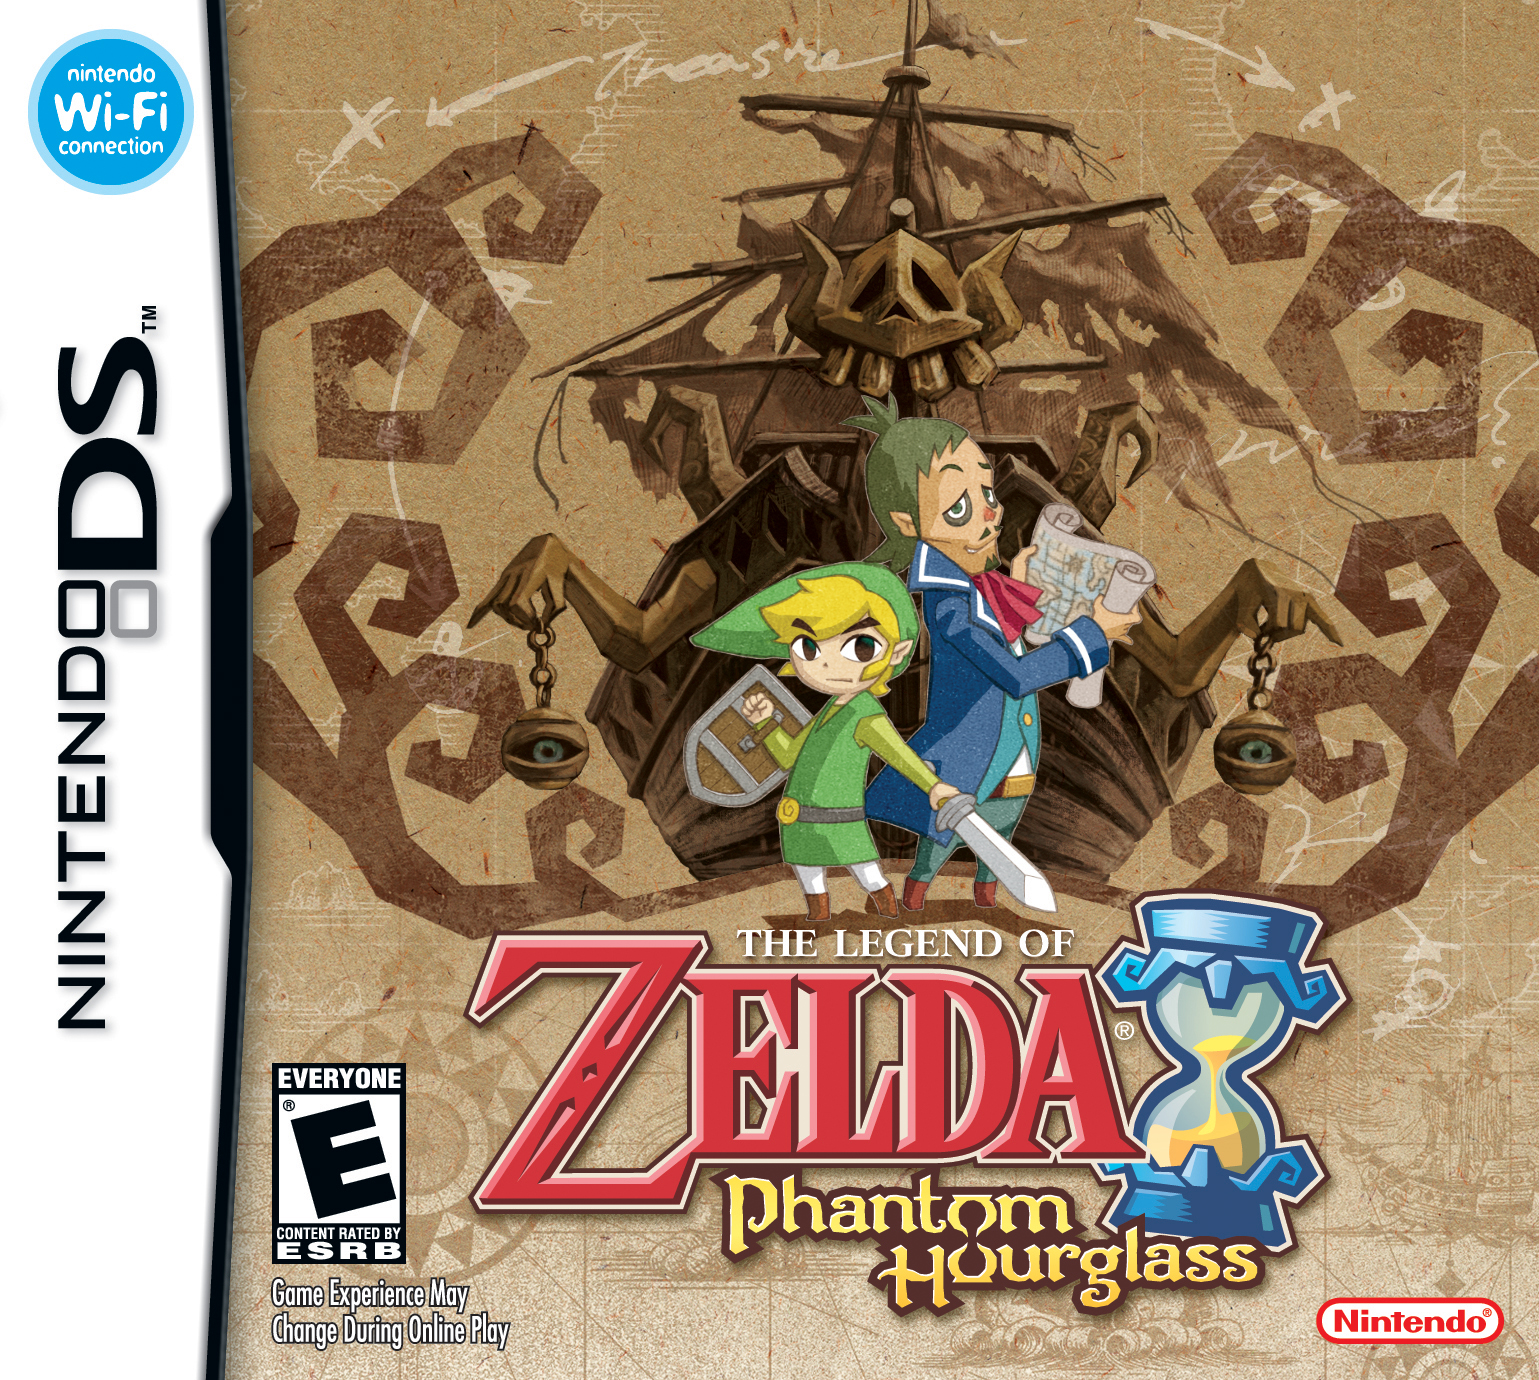 TLOZ PH box art.jpg